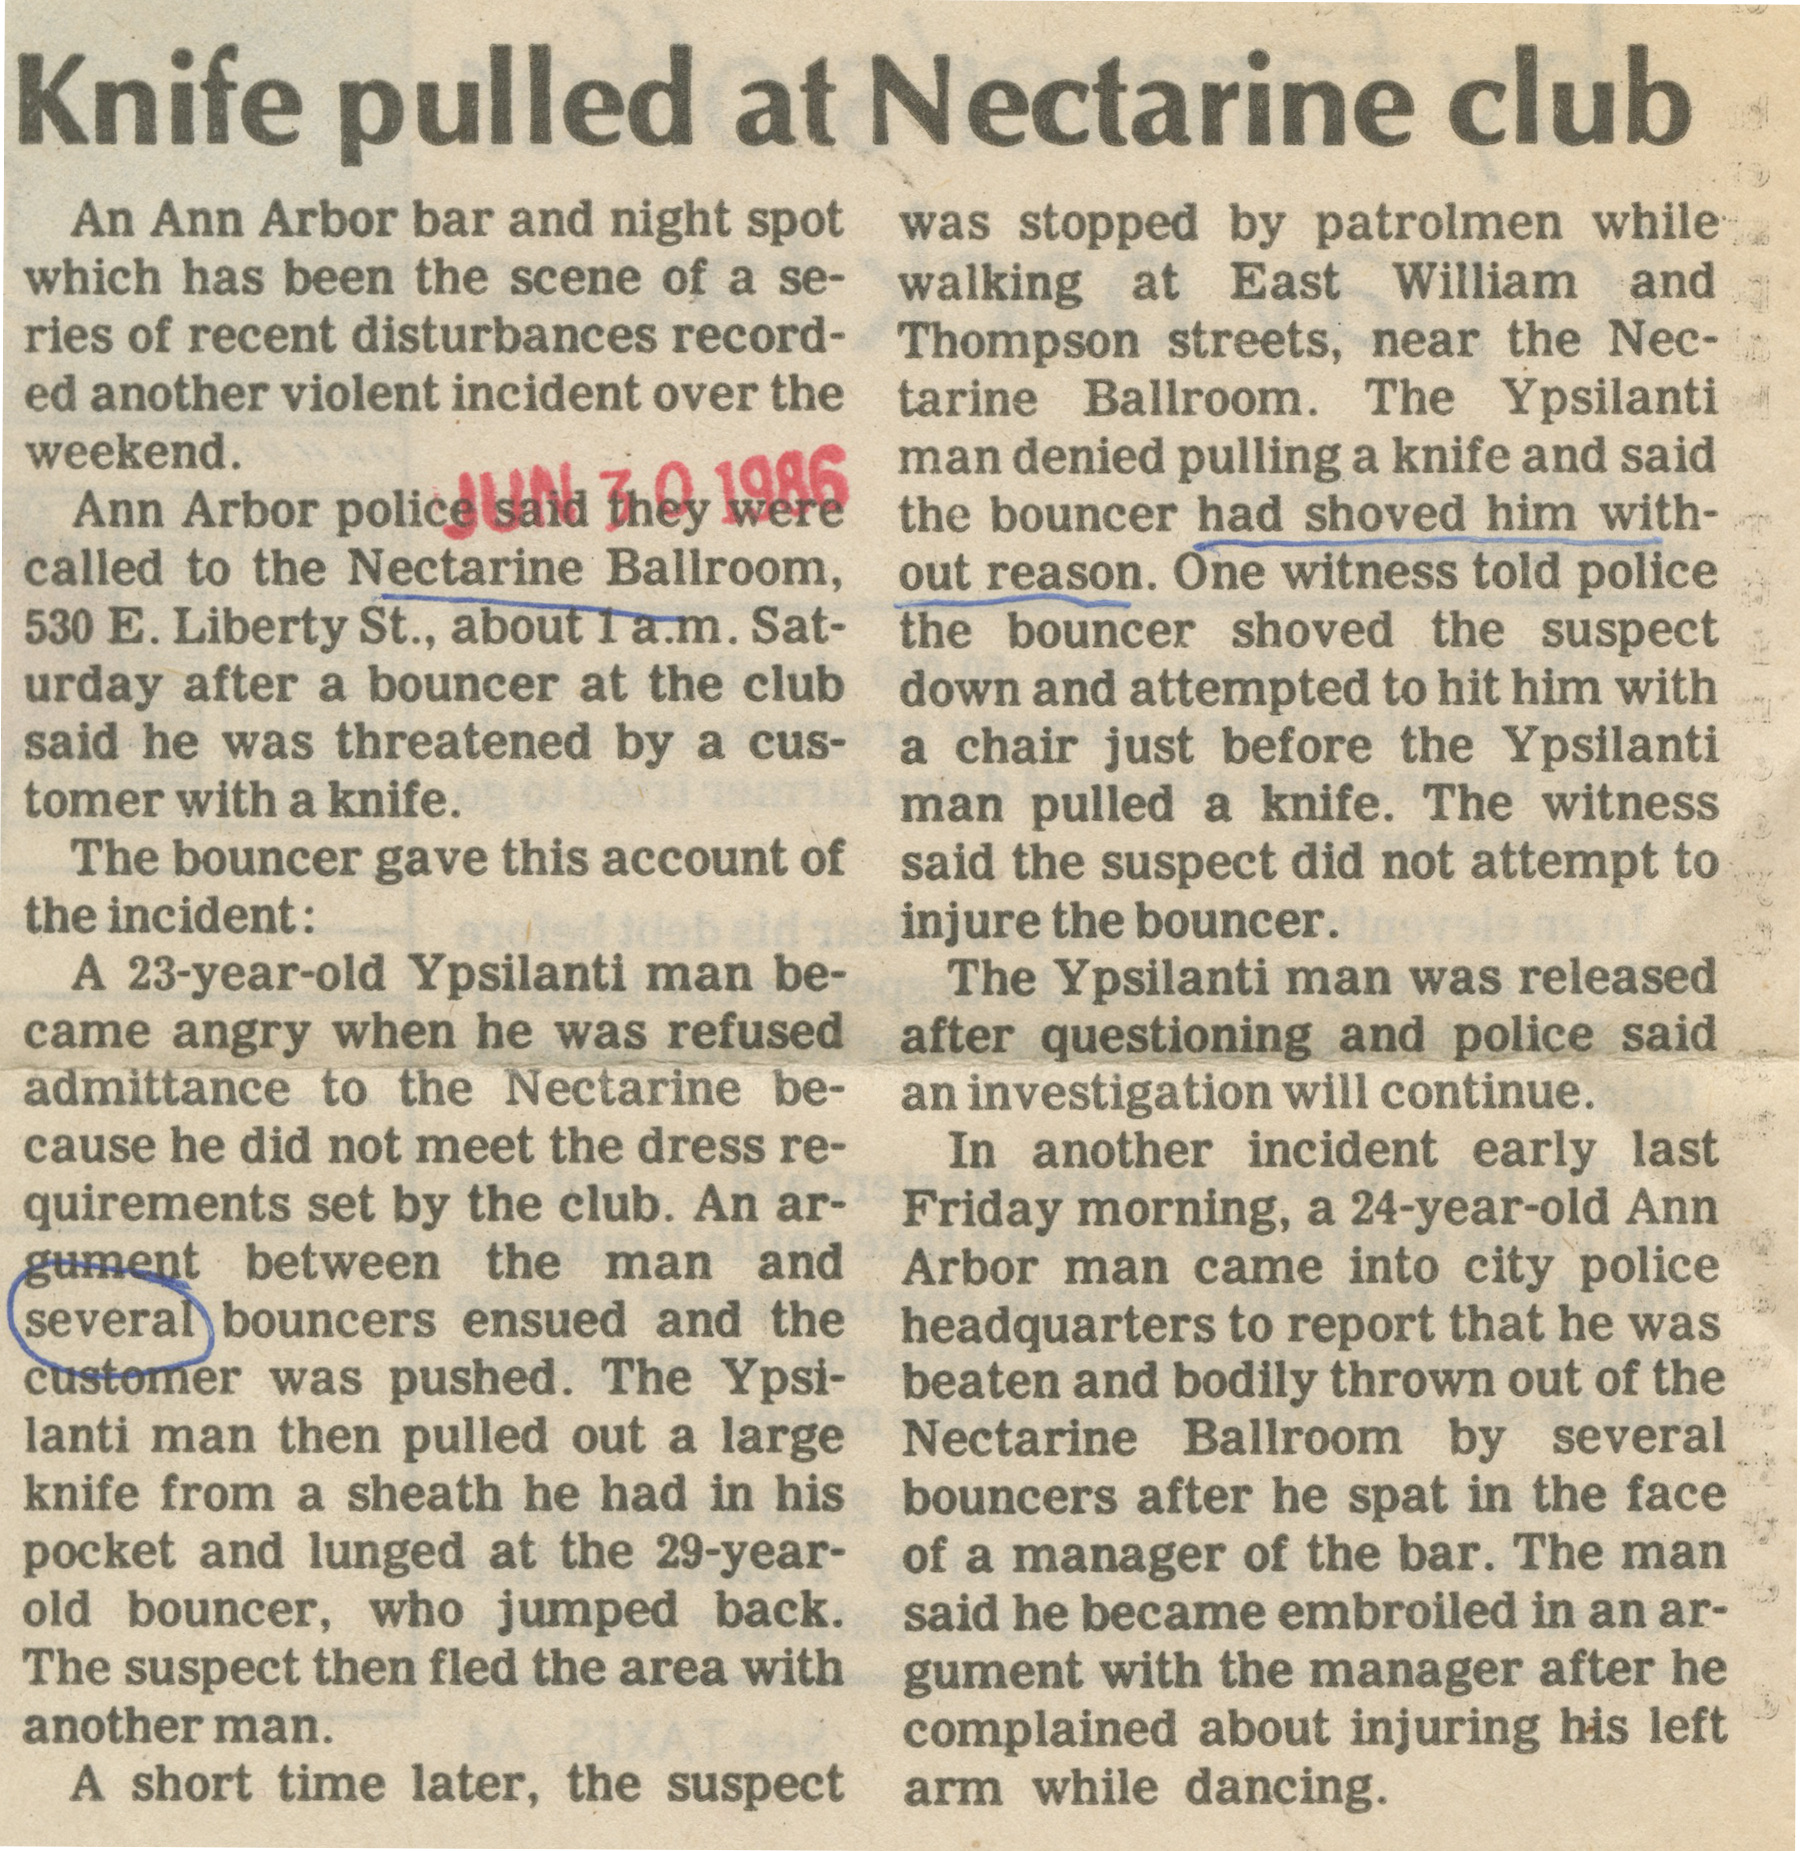 Knife pulled at Nectarine club image